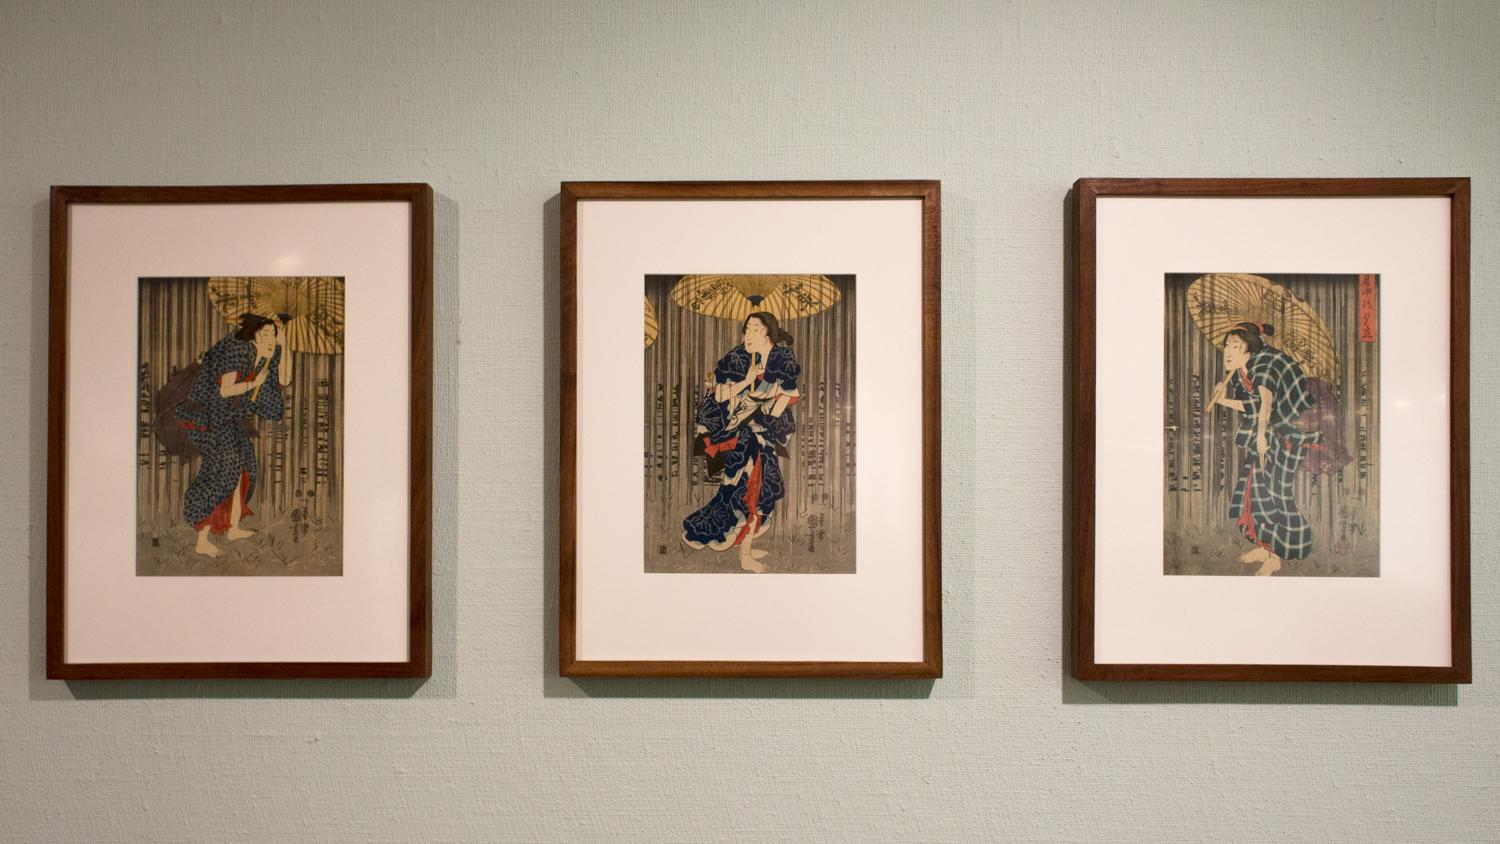 Utagawa Kuniyoshi, Sudden Shower in the Summer Heat, 1849-1851. Installation view at Krannert Art Museum, 2018.